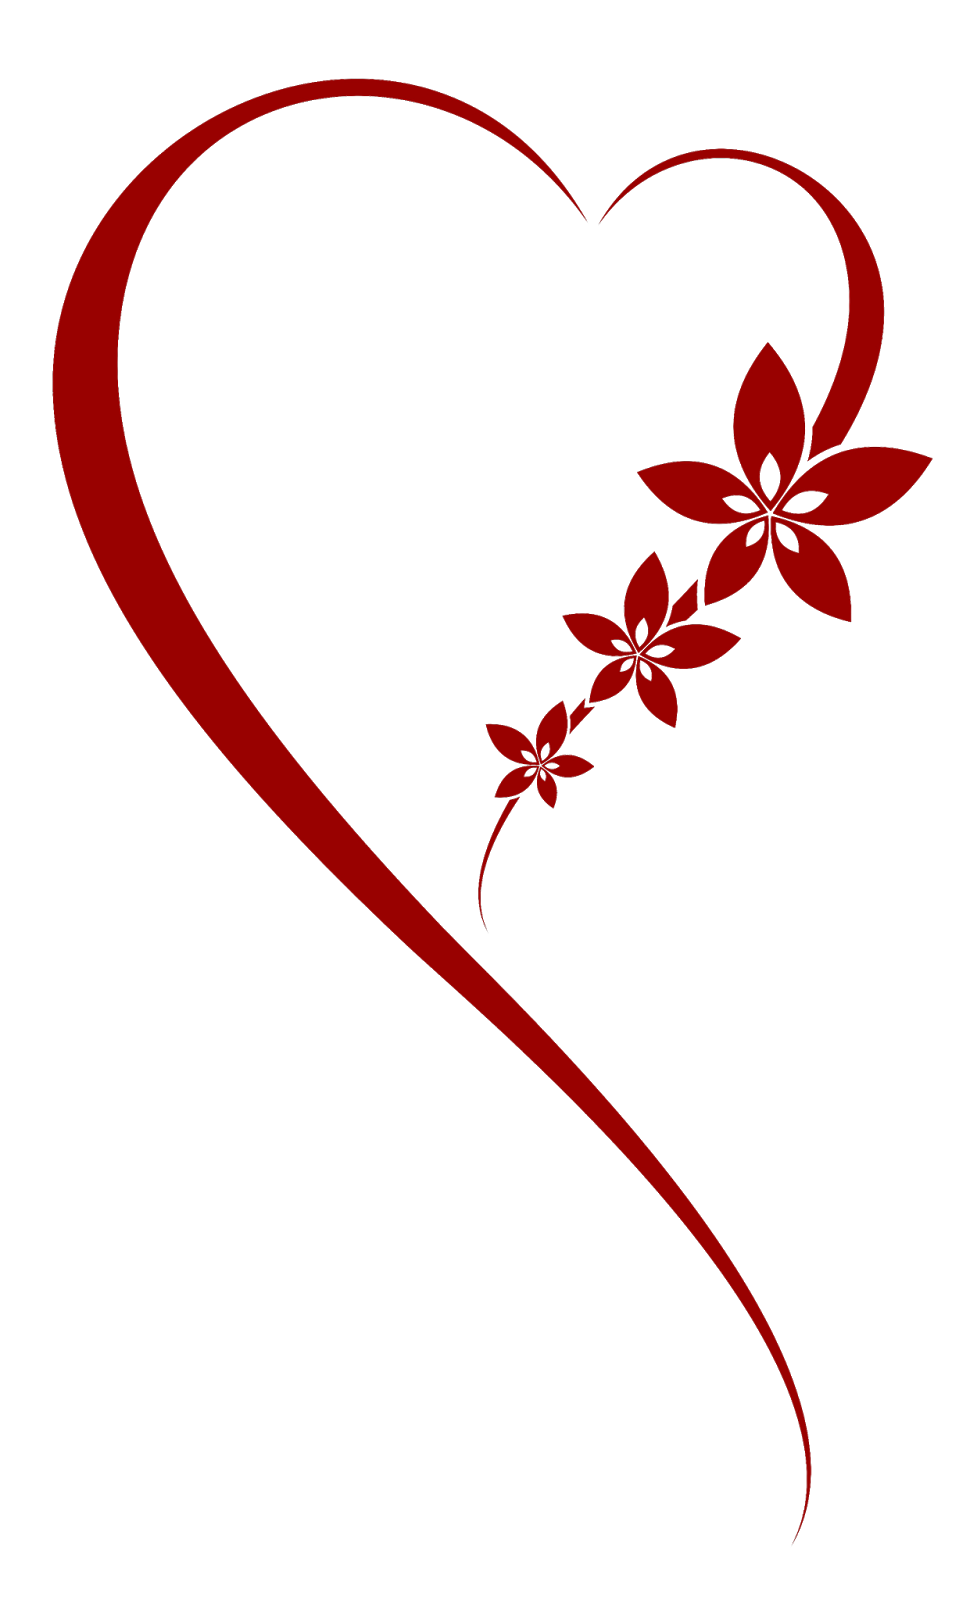 Corazon Png 977 1600 Red Heart Tattoos Valentine Embroidery Valentines Art